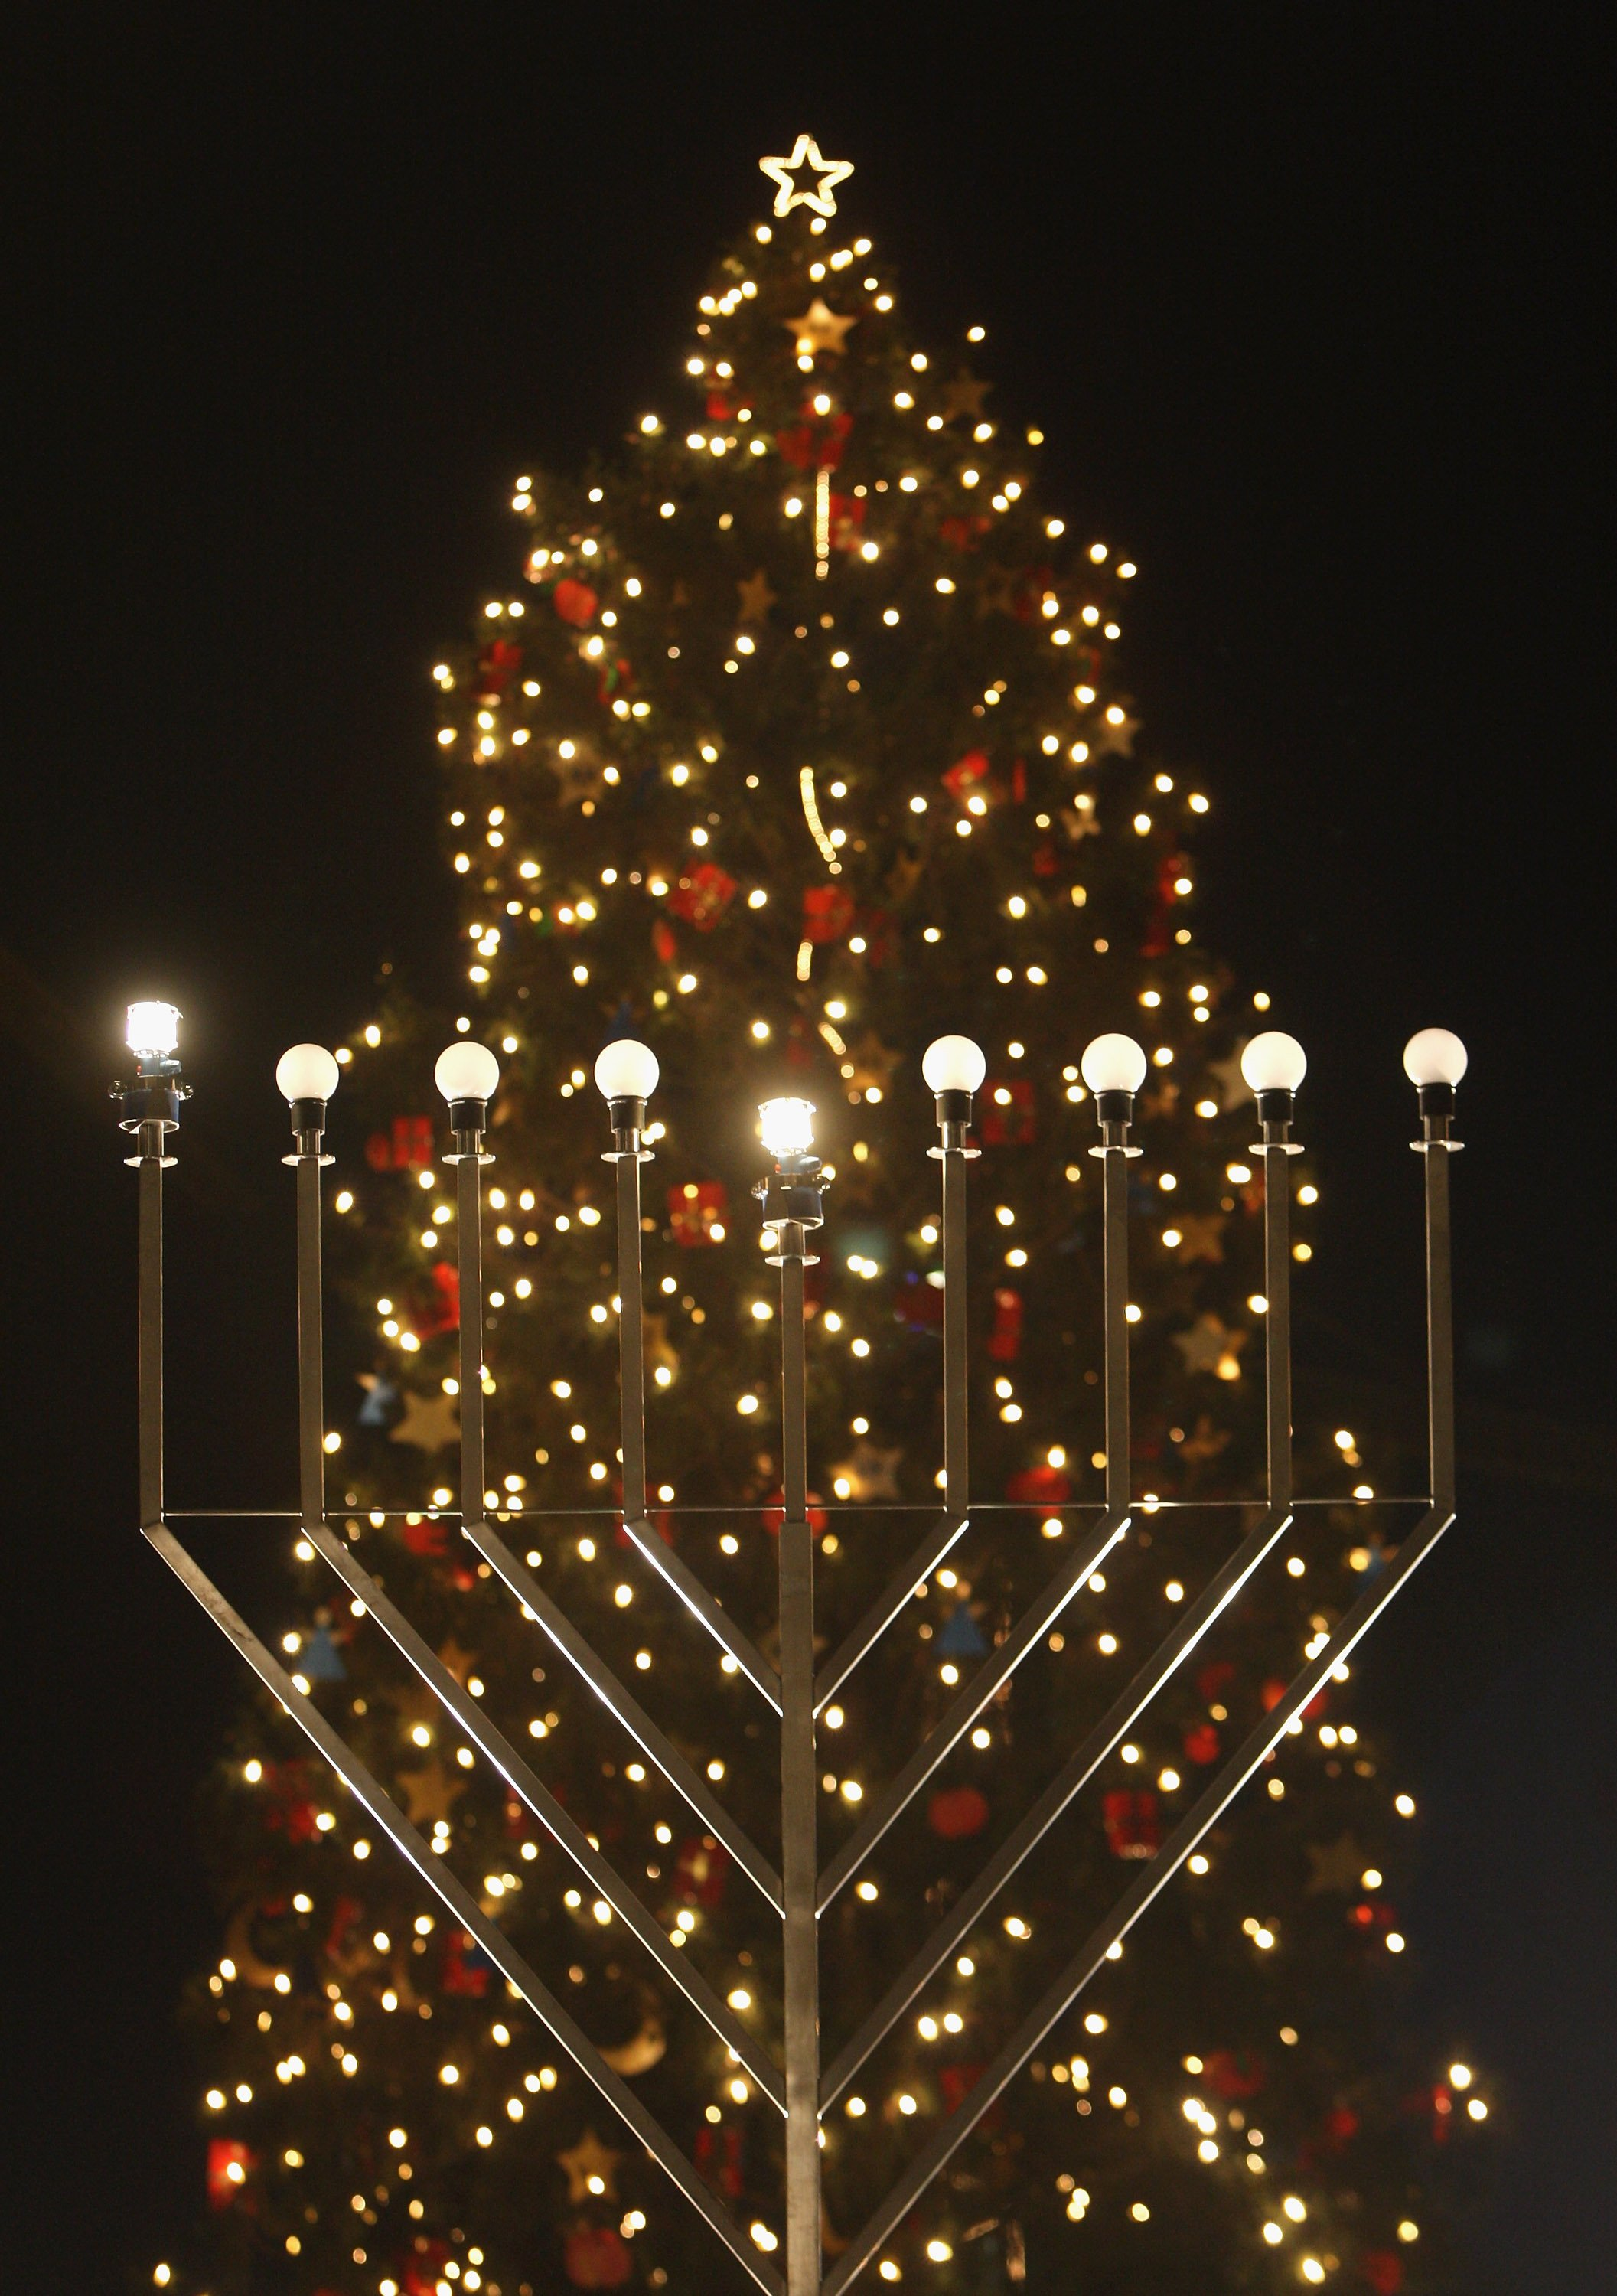 Sean Gallup—Getty Images A giant, gas-lit menorah stands in front of a Christmas tree shortly after members of the local Jewish community lit the menorah on the night before the first day of Hannukah on Dec. 4, 2007 in Berlin, Germany.